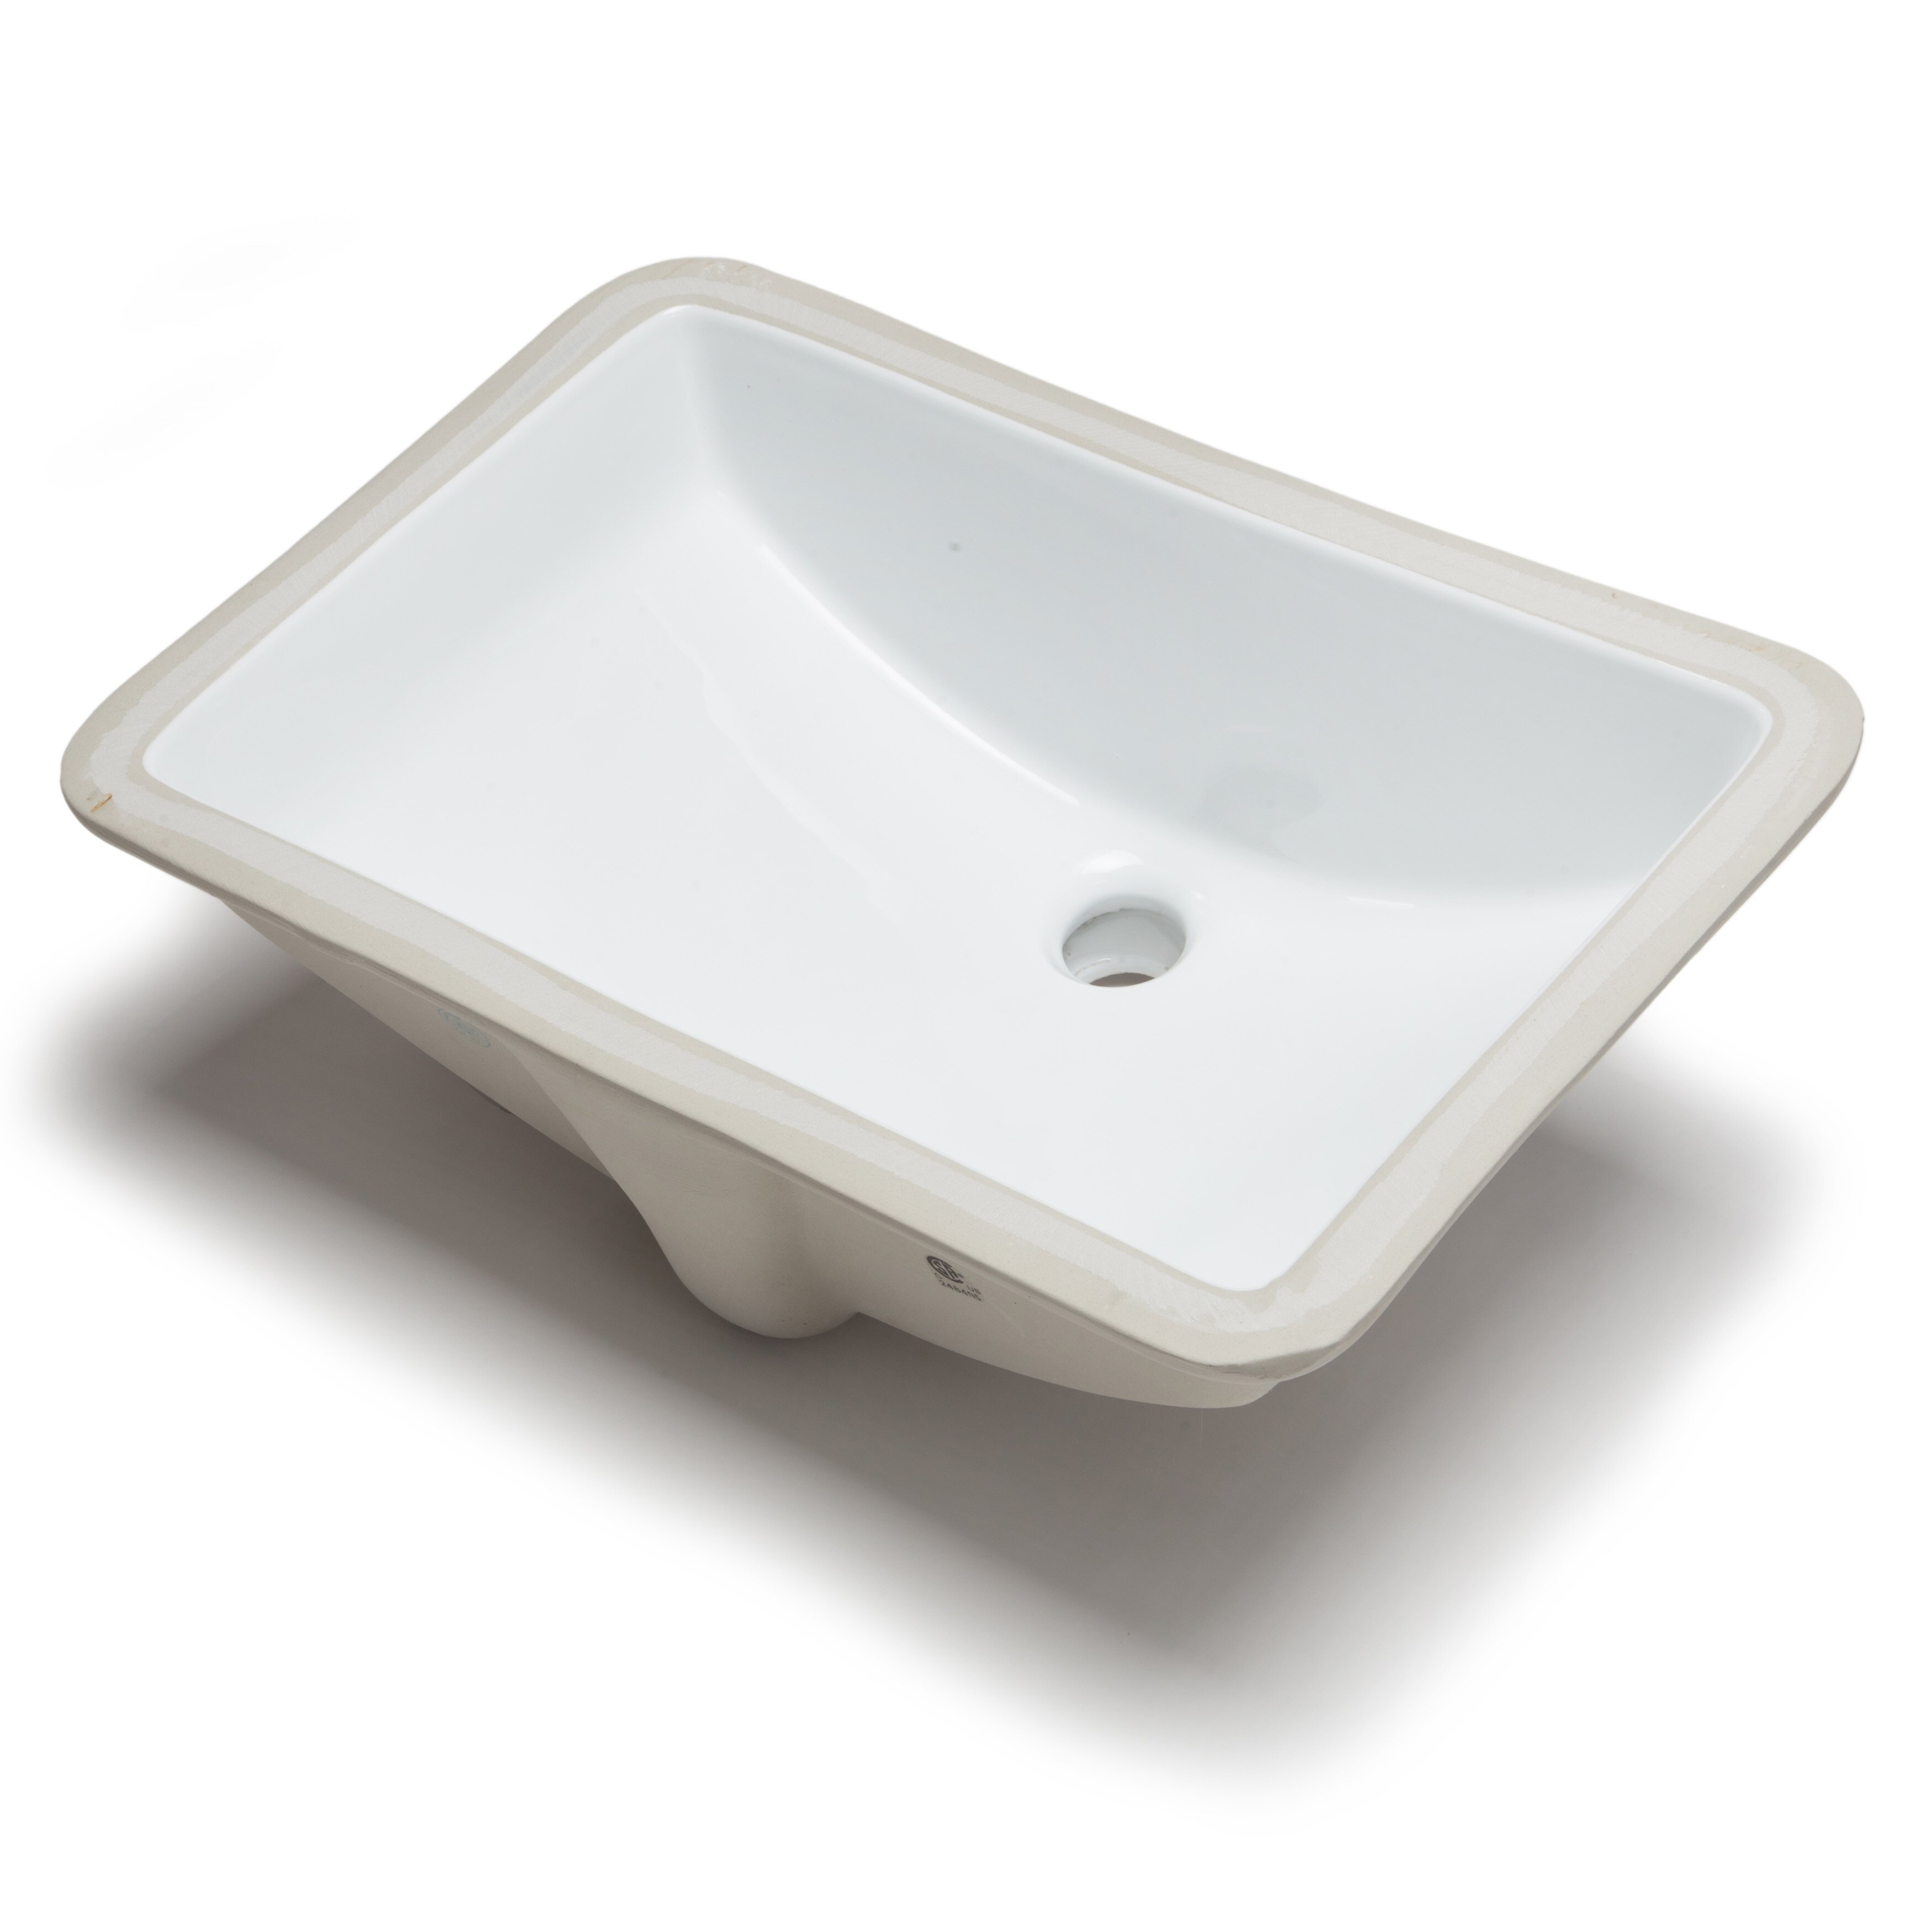 Hahn Ceramic Bowl Rectangular Undermount Bathroom Sink With Overflow Reviews Wayfair